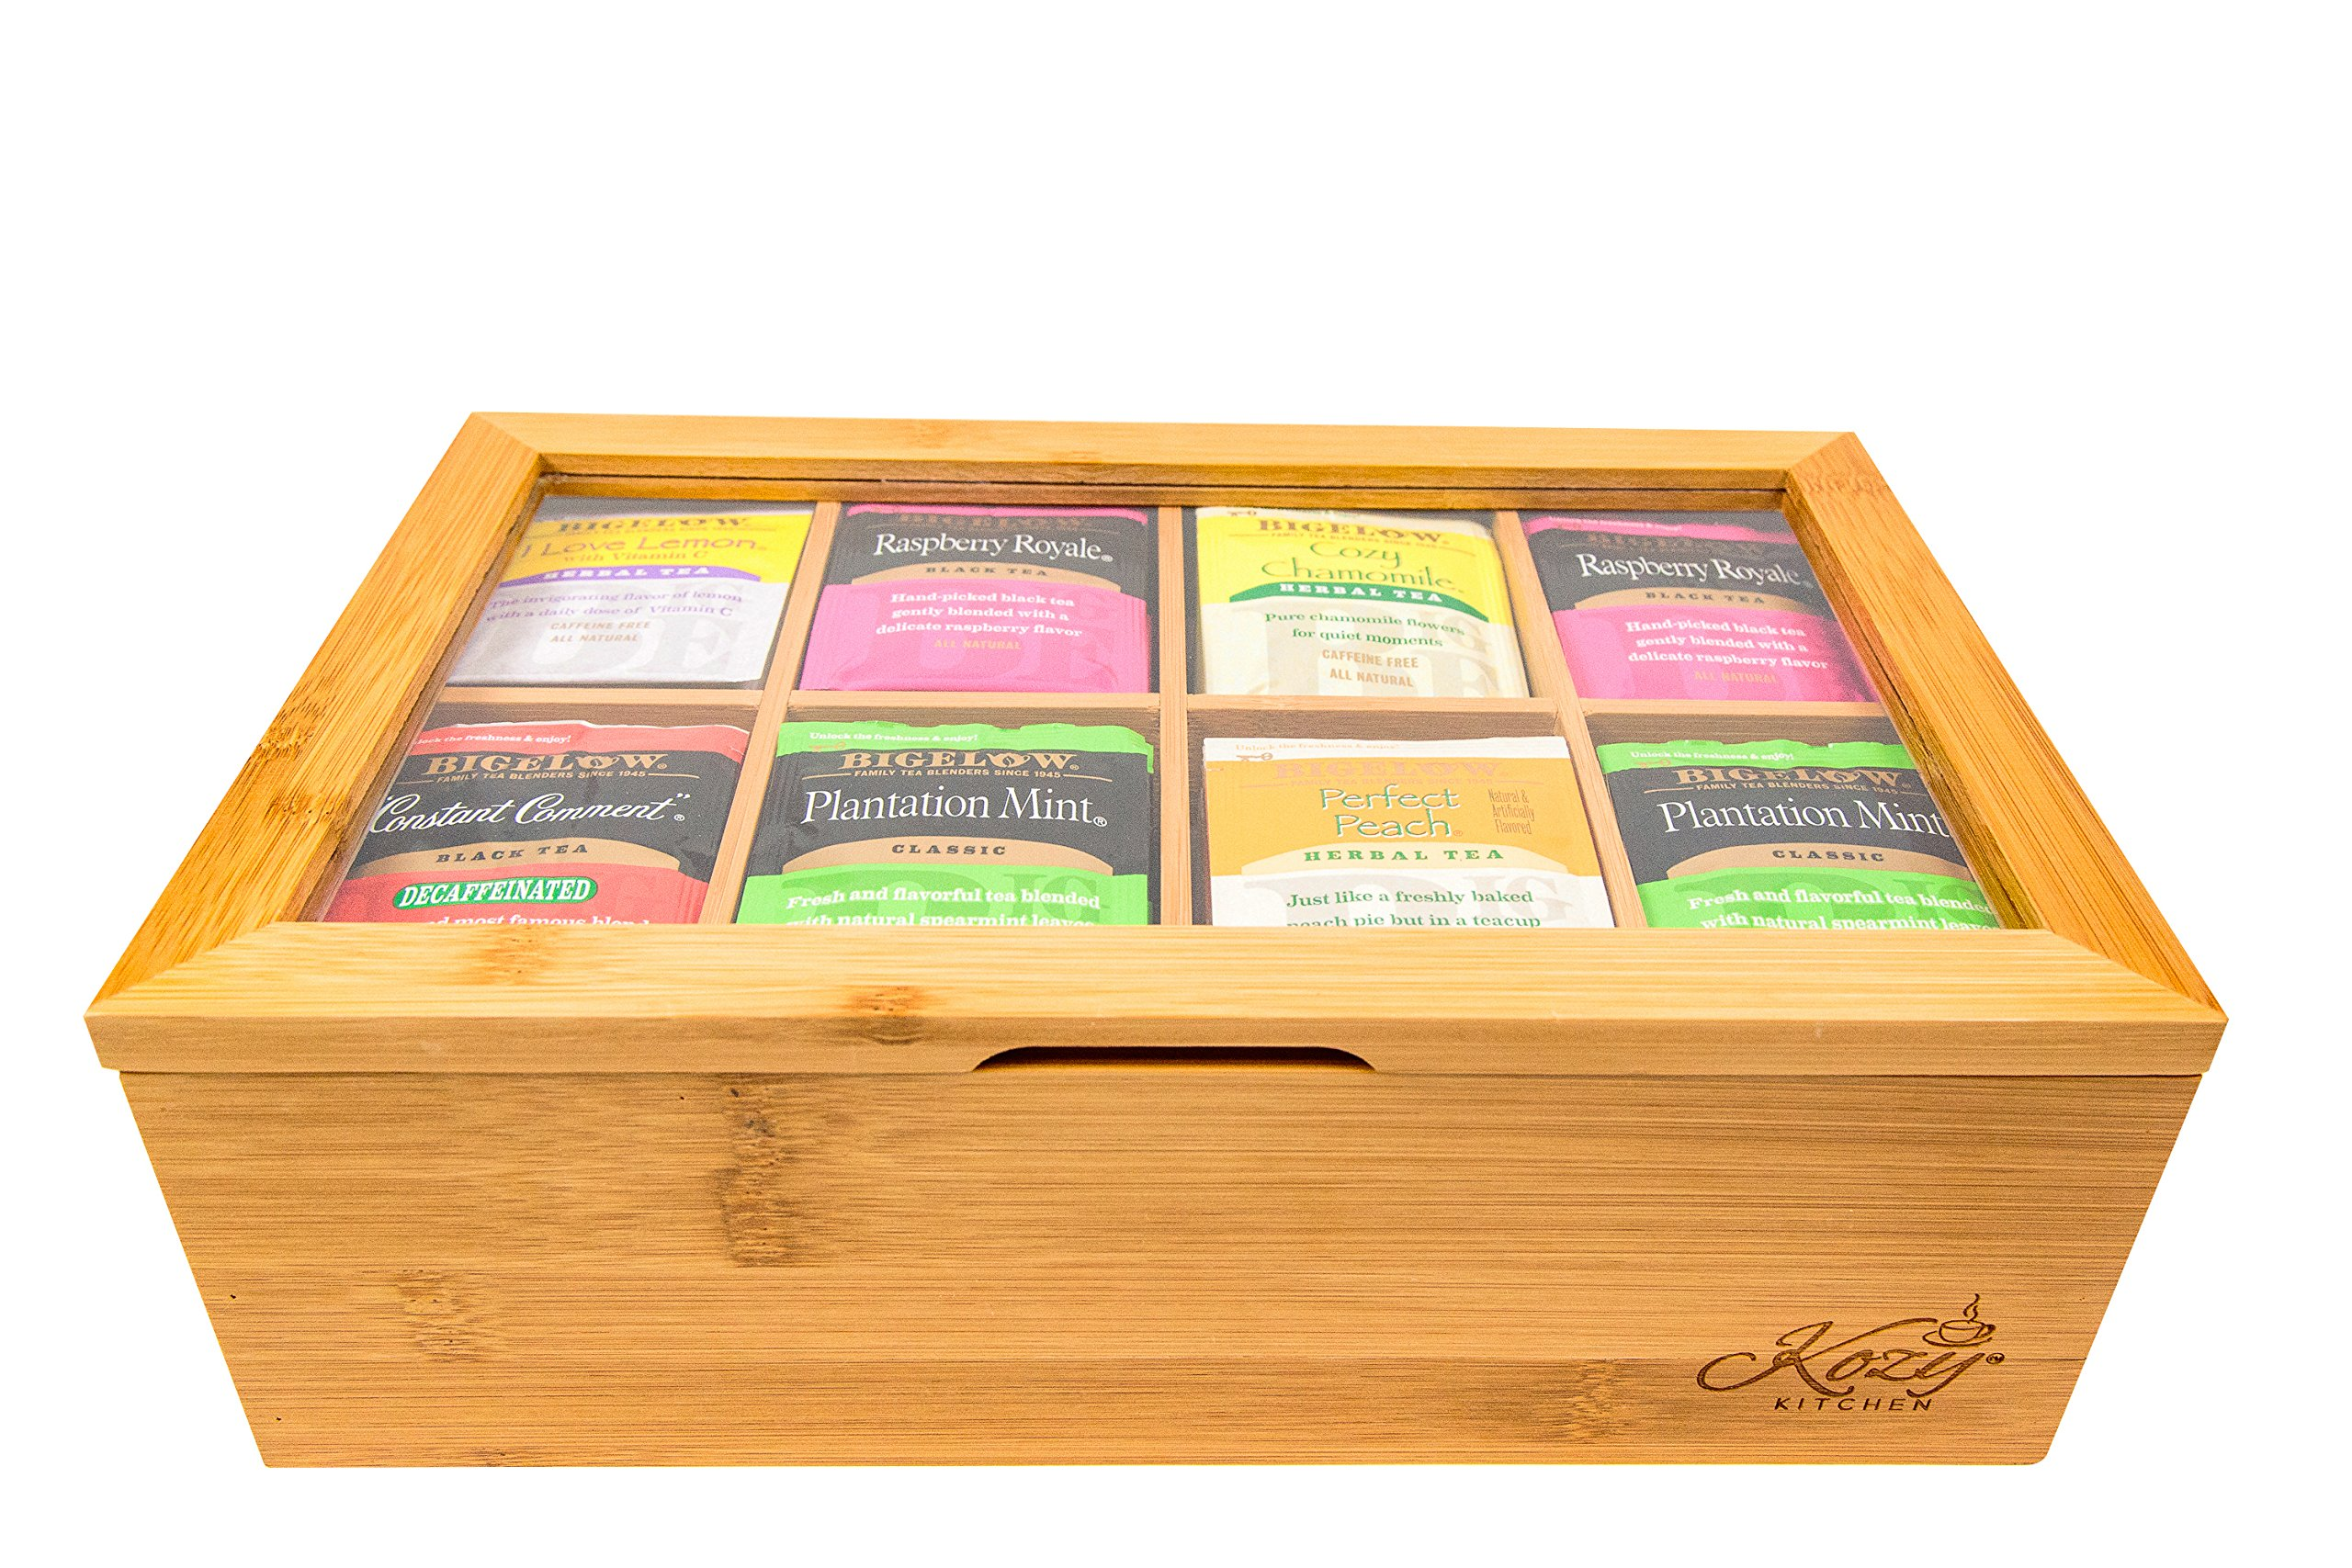 Bamboo Tea Box Storage Organizer, 100% Natural Wooden Finish Tea Bag Organizer 8 Storage Compartments and Clear Shatterproof Hinged Lid by Kozy Kitchen (Image #2)